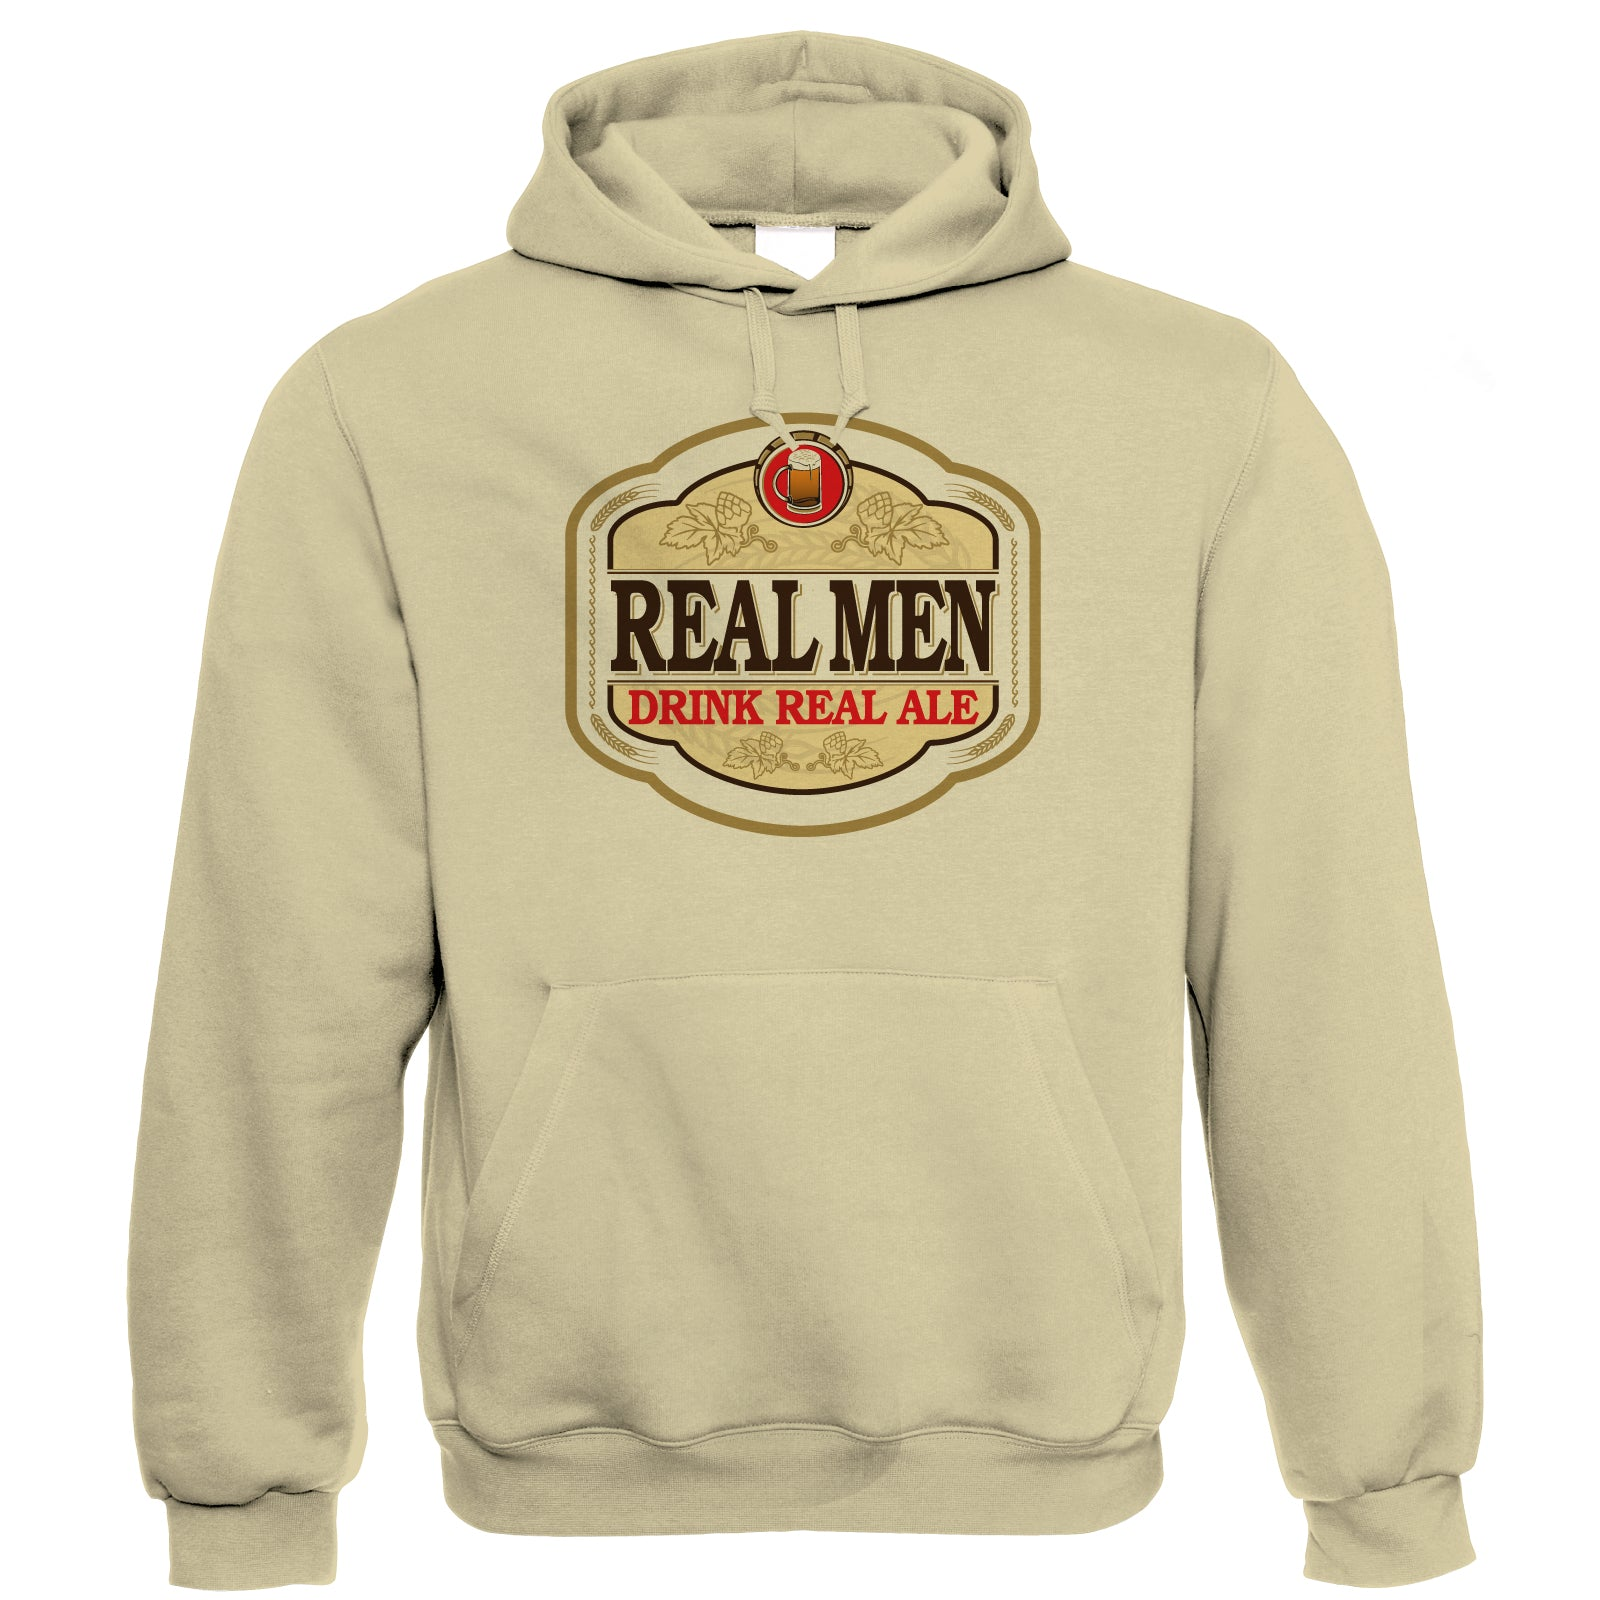 Real Men Drink Real Ale Hoodie | Beer Ale Brewing Distillery Hops Tap Pint Mild | Drink Beer Wine Cheers Celebrate Tipple Snifter | Drinking Gift Him Her Birthday